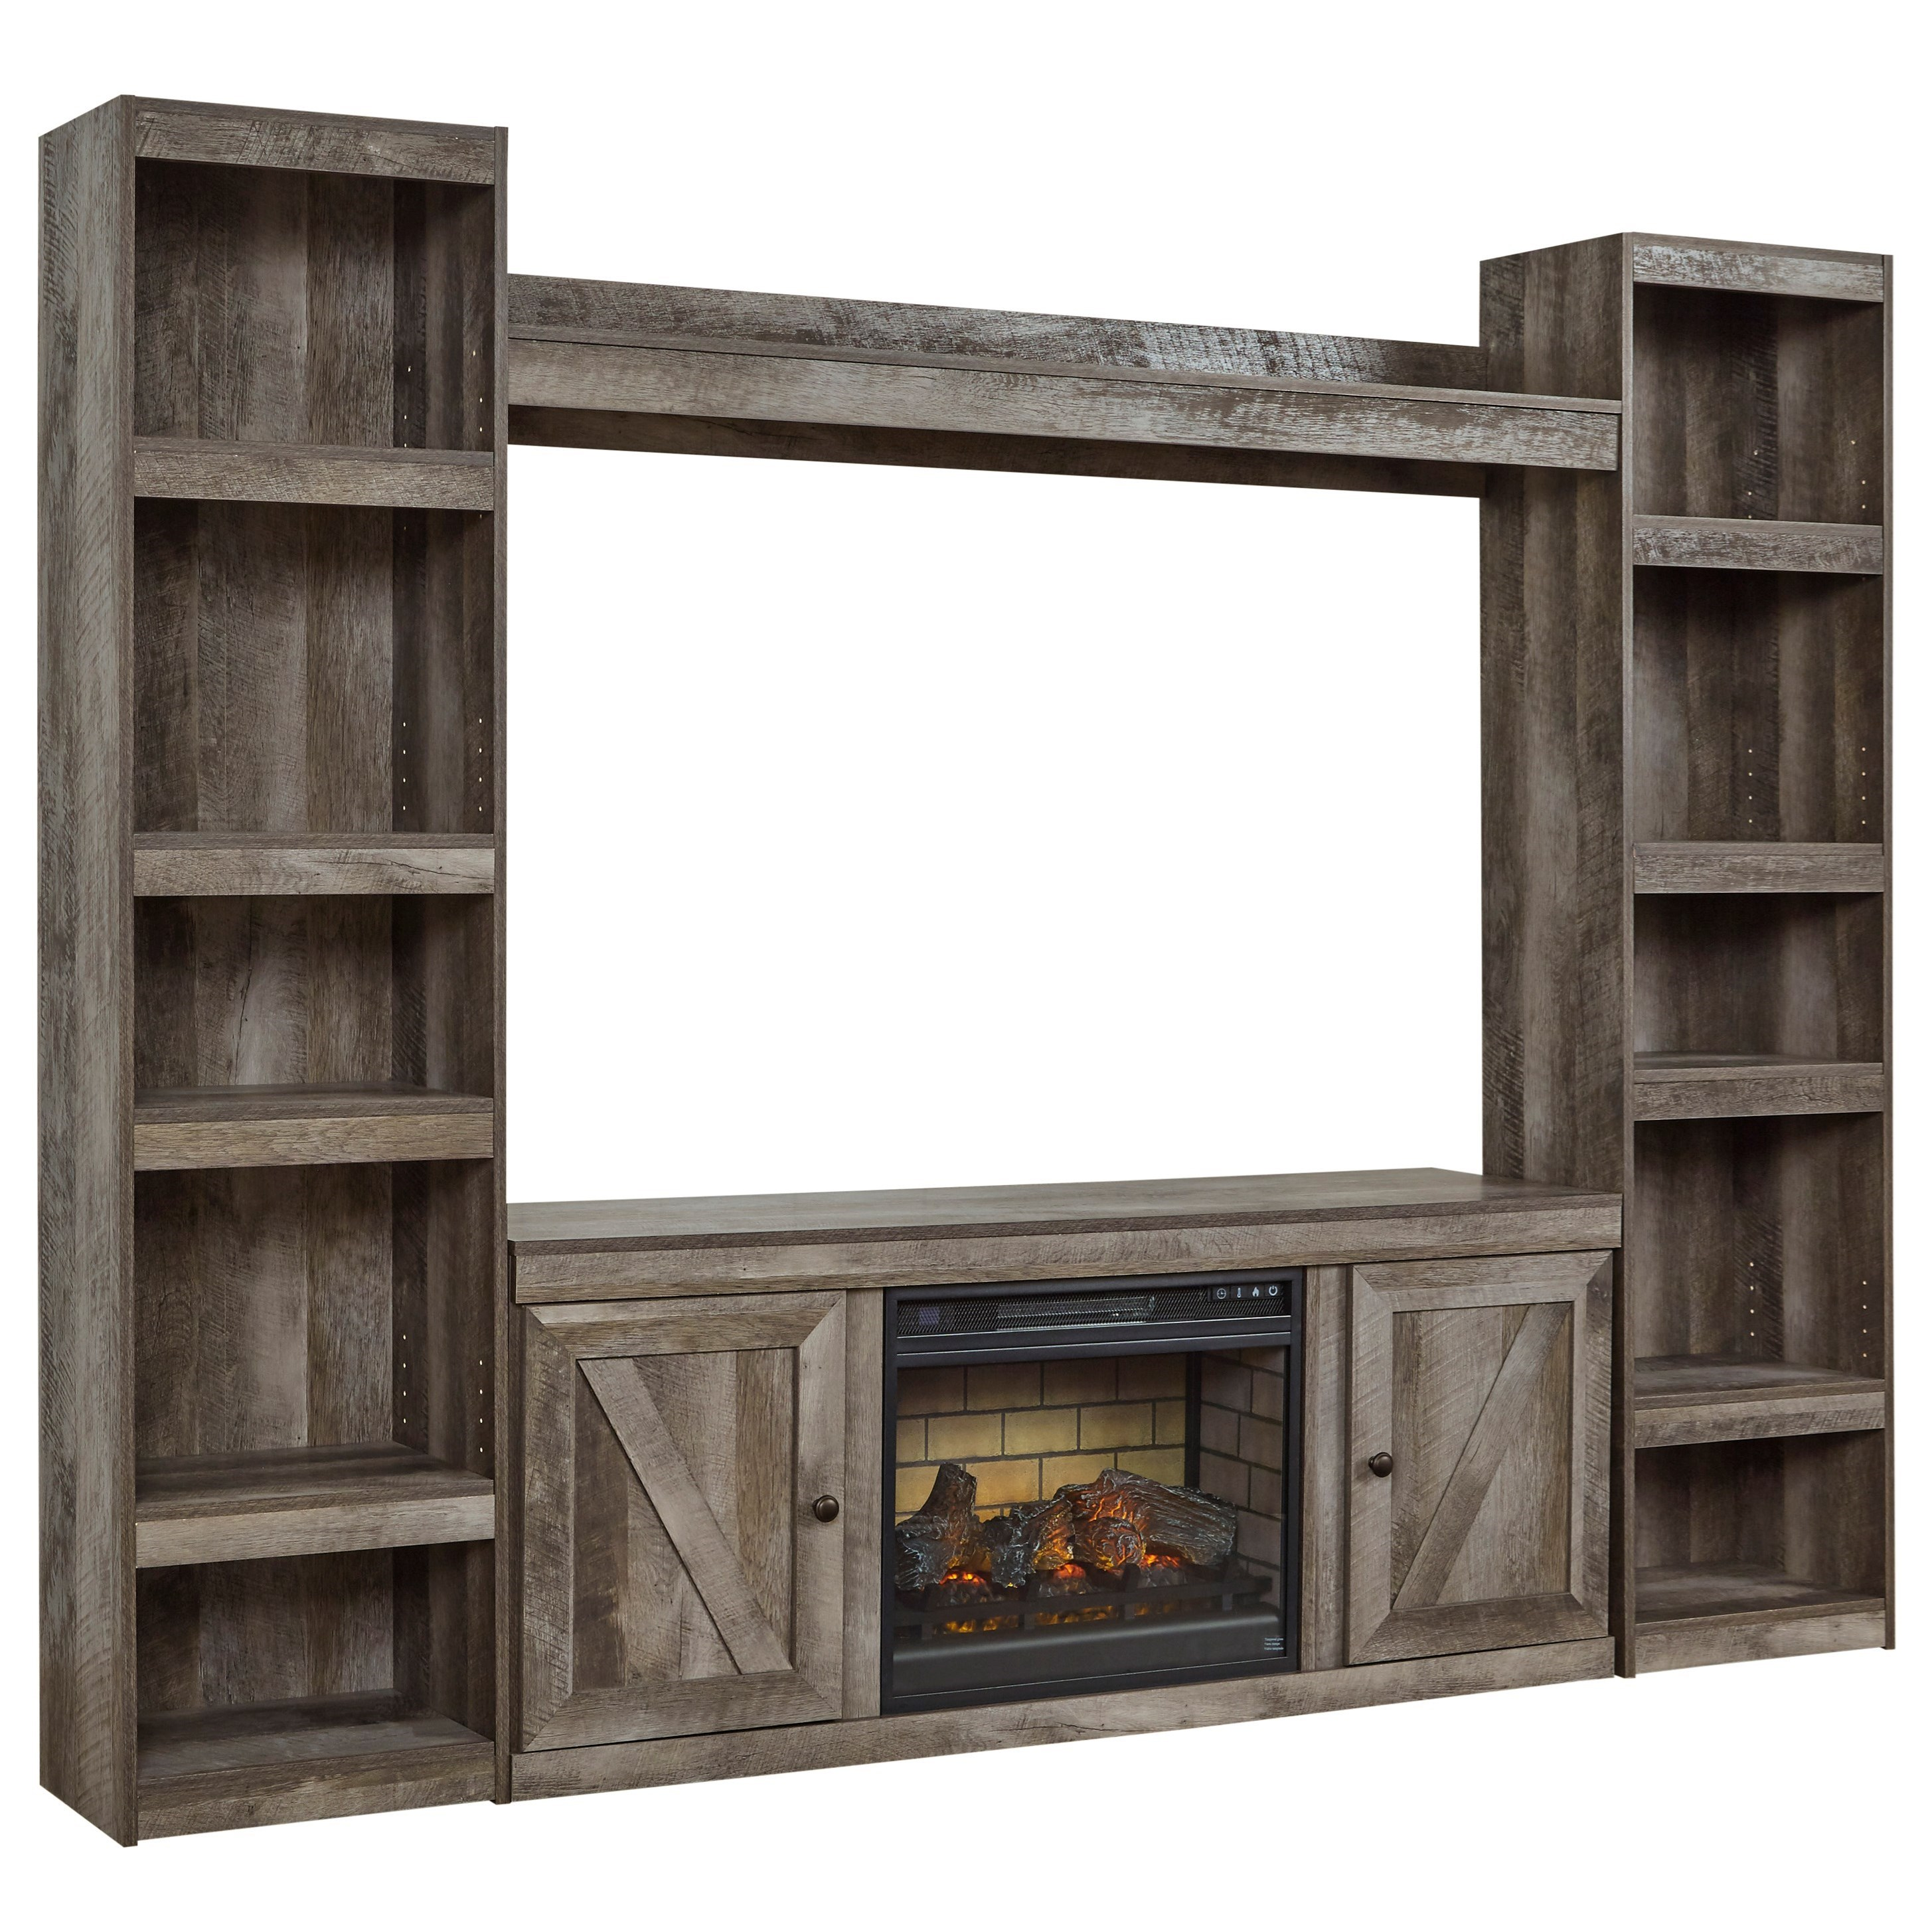 Wynnlow Large TV Stand w/ Fireplace Insert and Piers by Signature Design by Ashley at Northeast Factory Direct